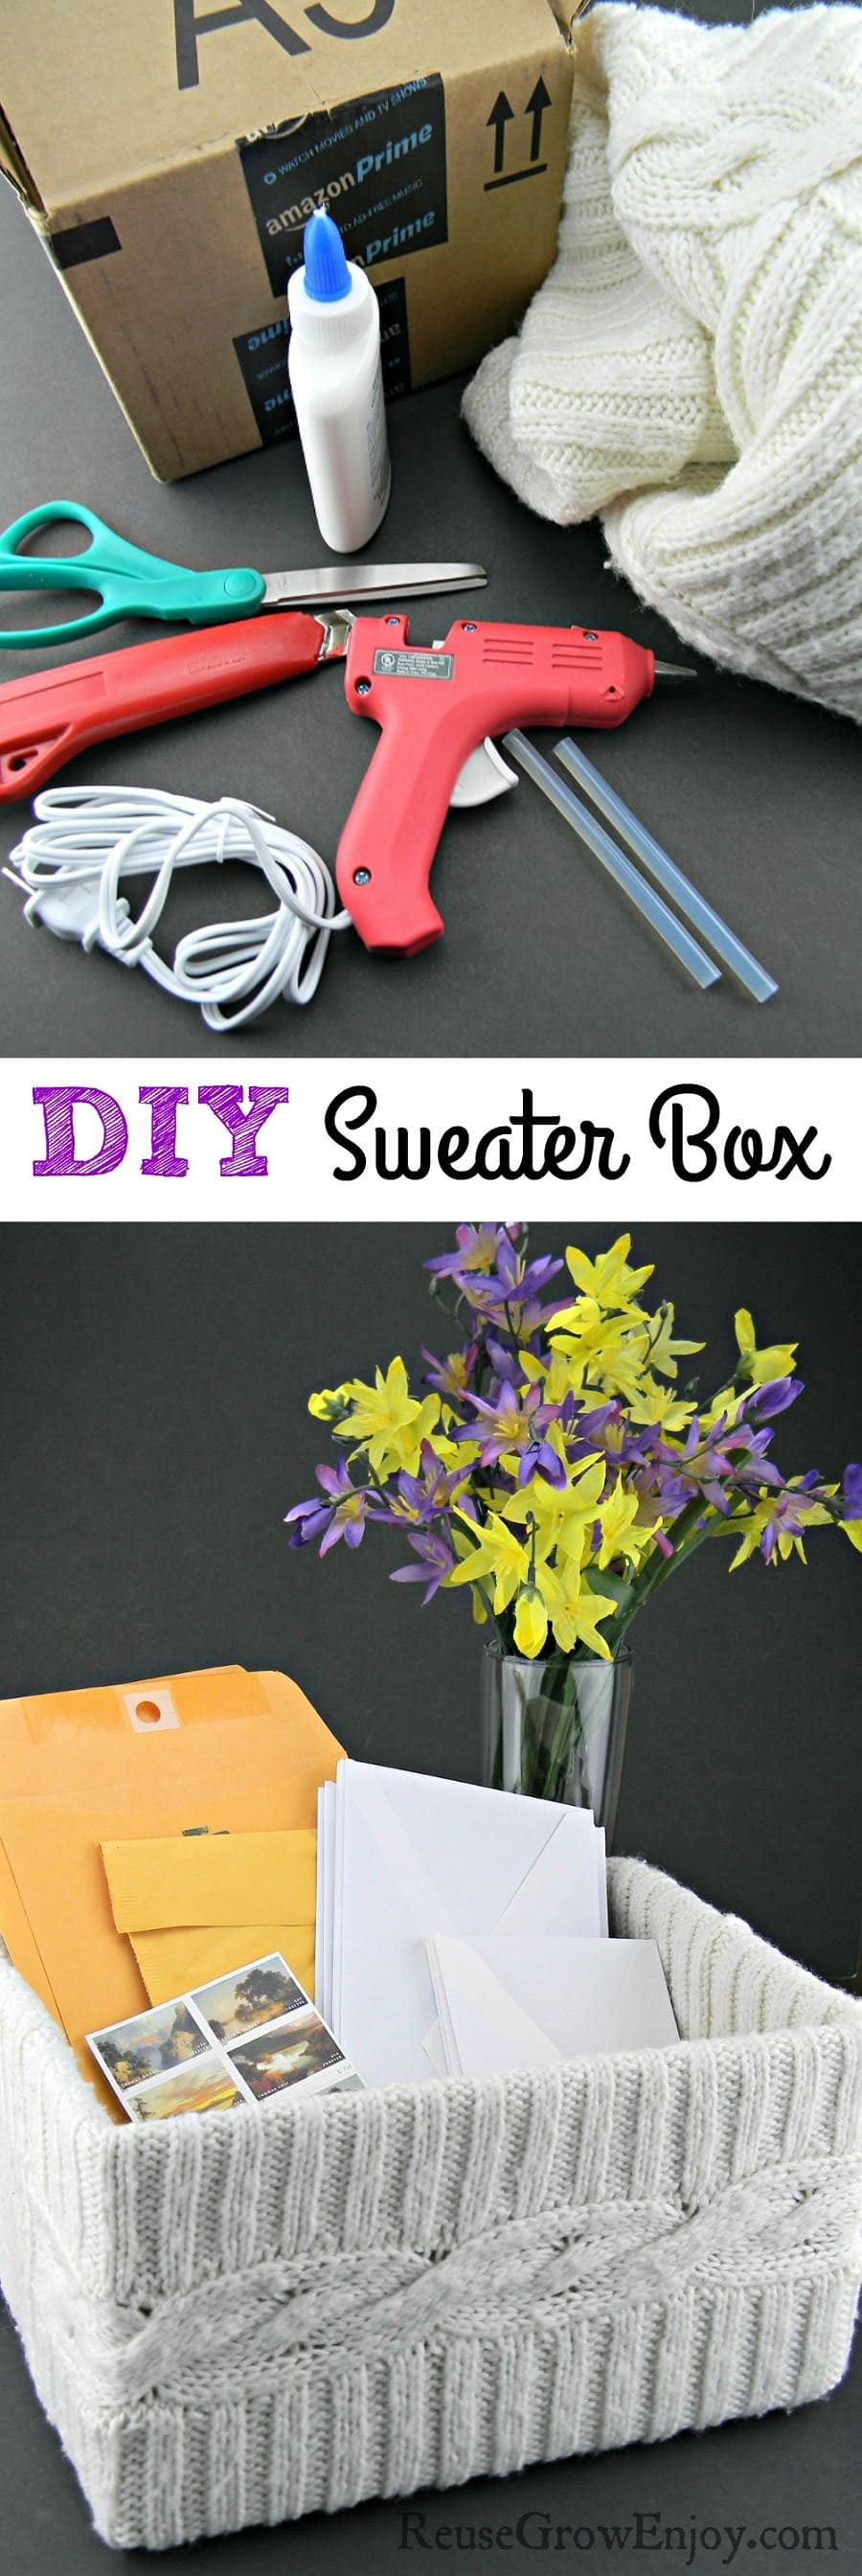 Sweater Box DIY